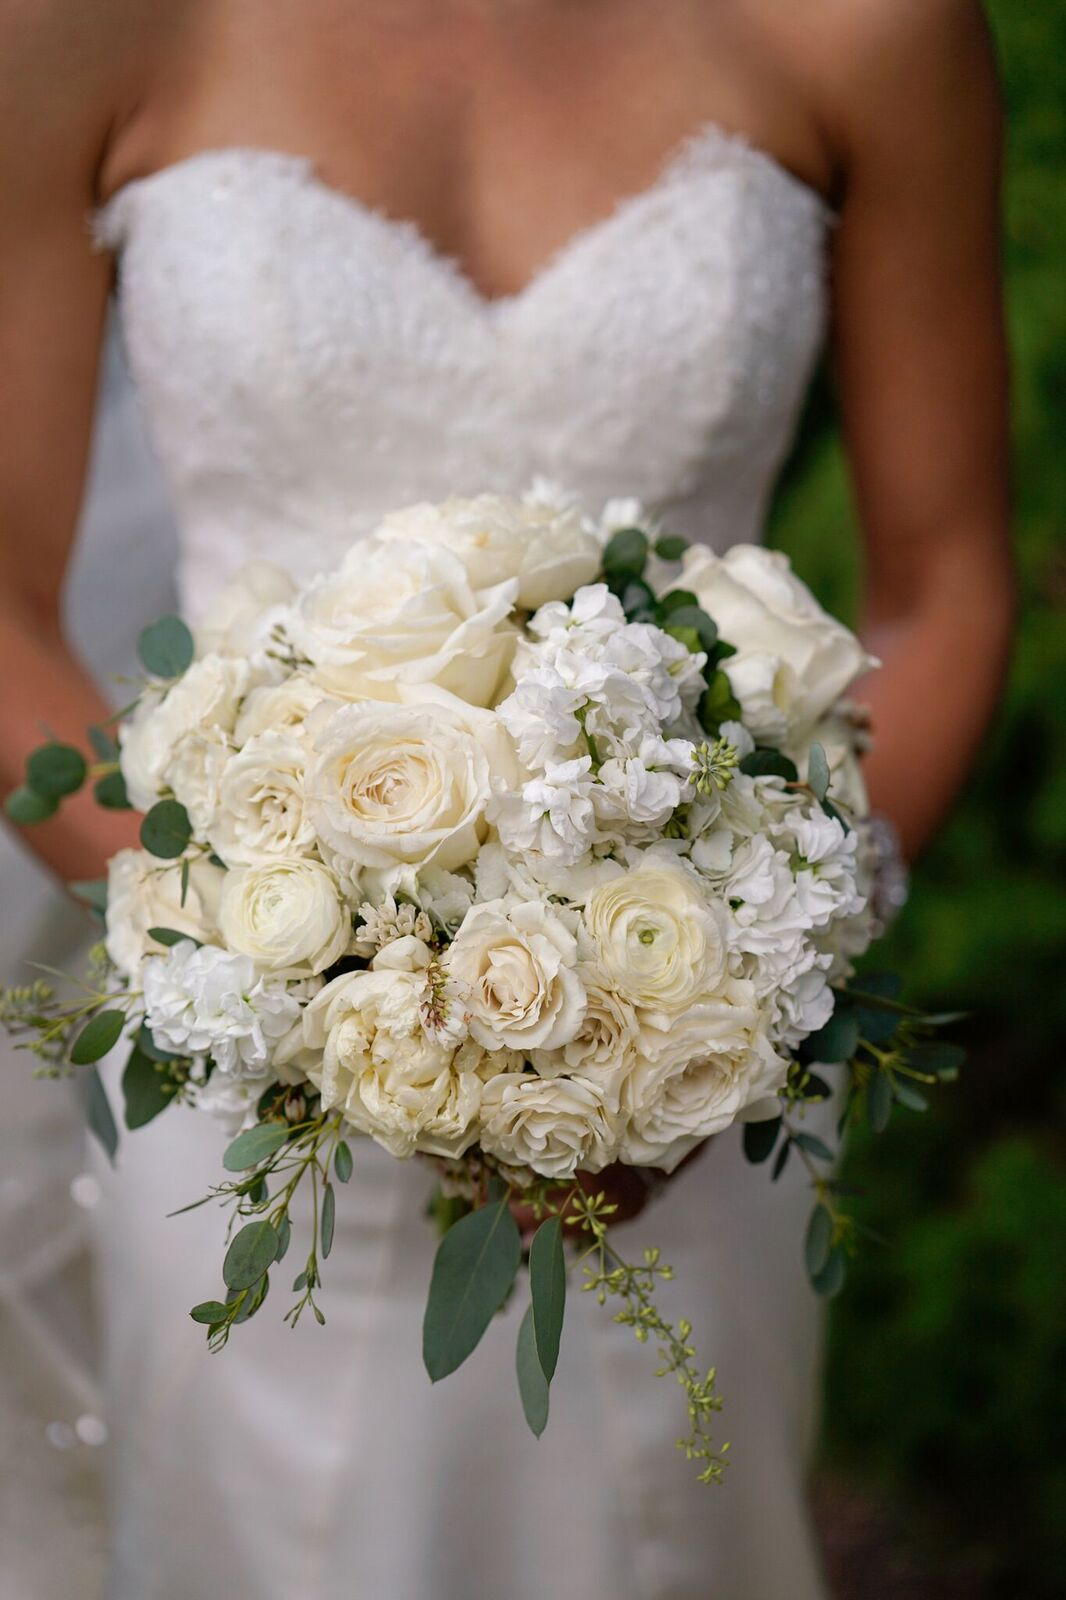 A gorgeous all white bridal bouquet was the perfect elegant touch for this upscale garden wedding we planned.